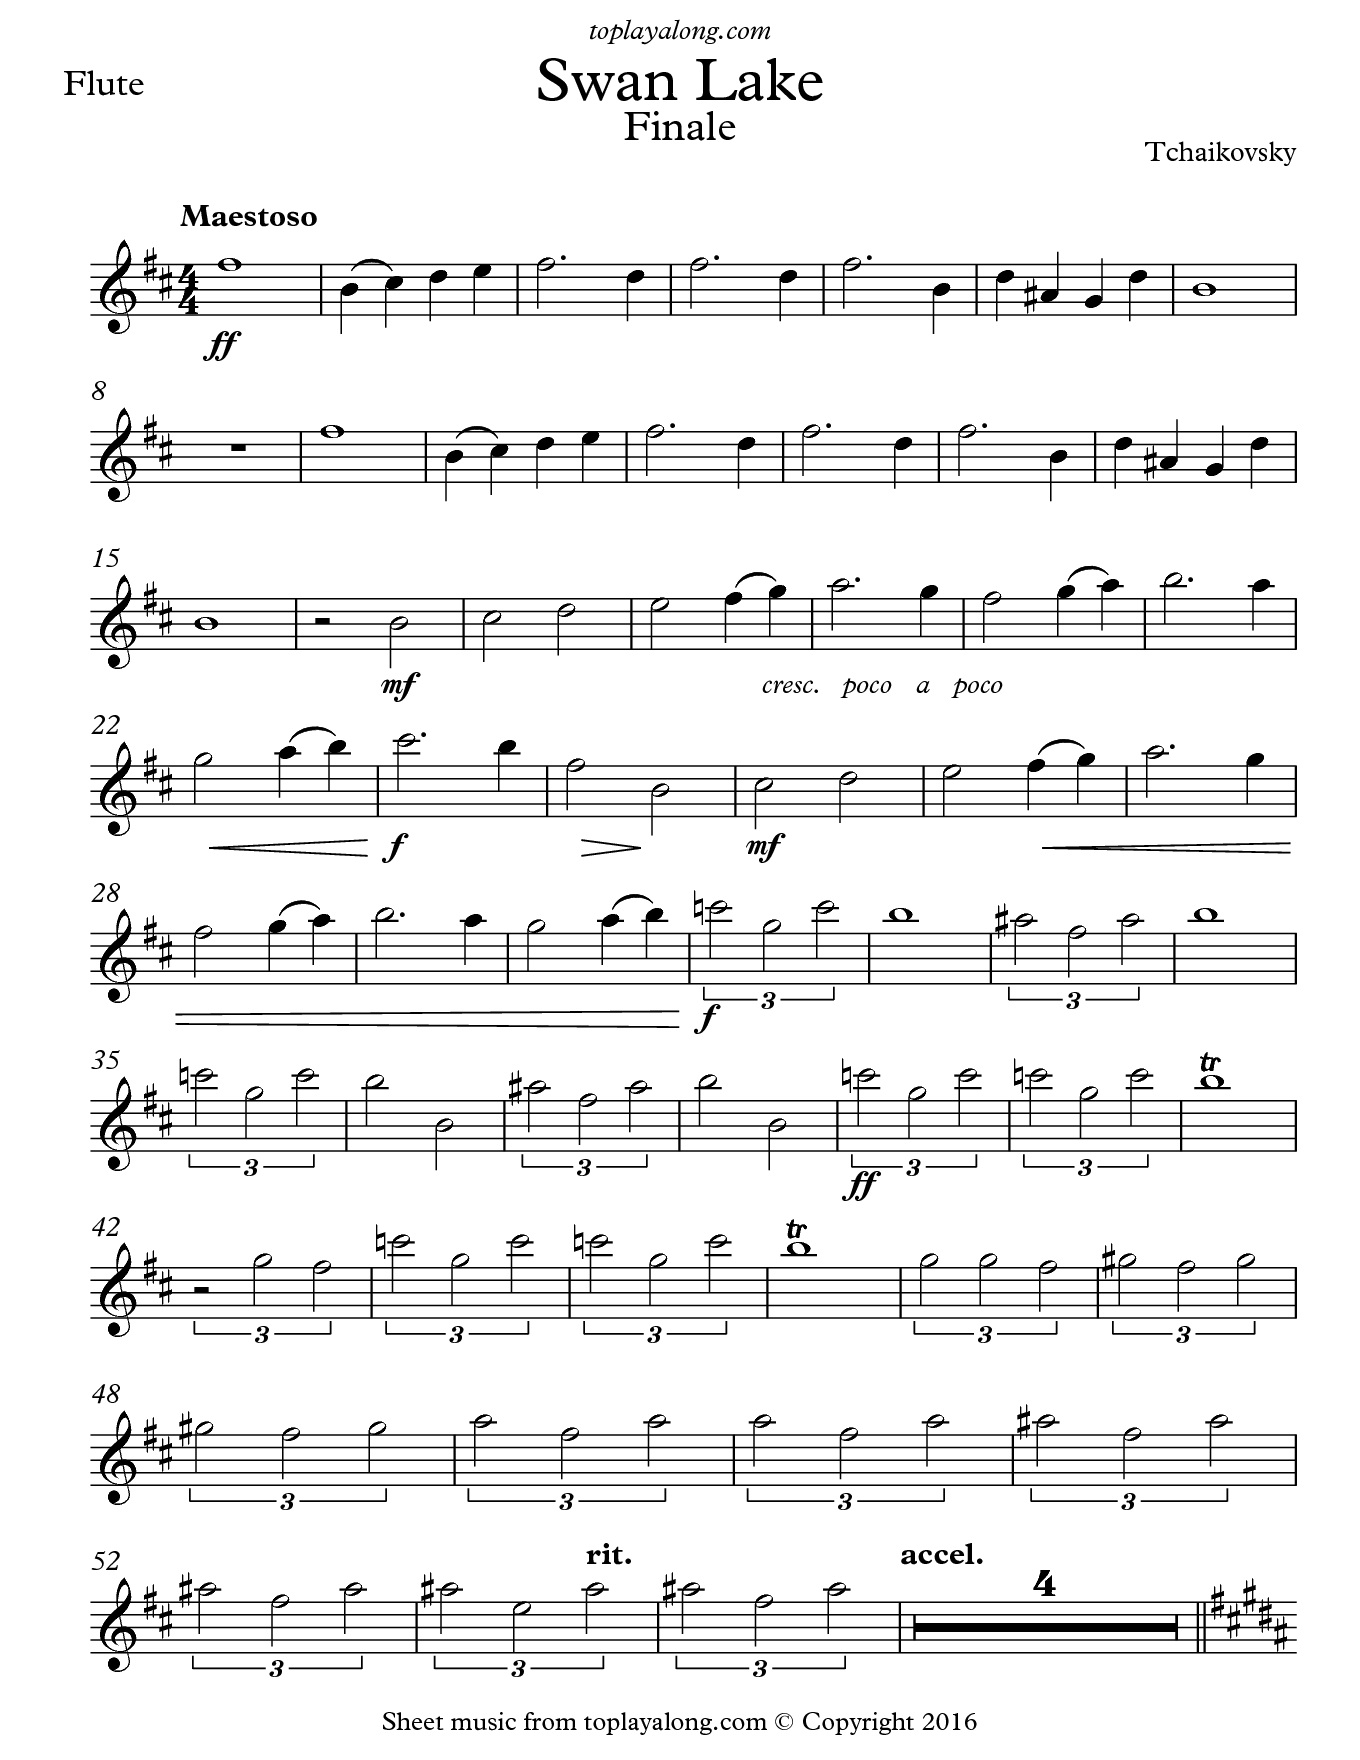 Swan Lake Finale by Tchaikovsky. Sheet music for Flute, page 1.